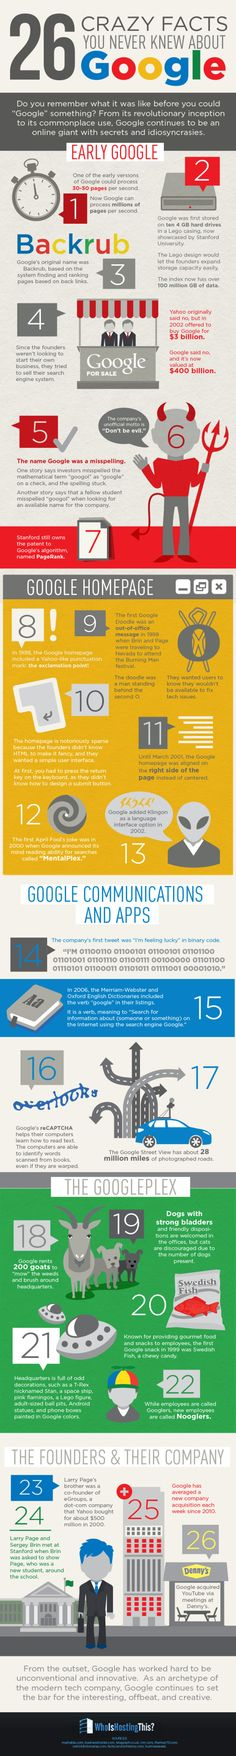 26 Crazy Google Facts you may not know about